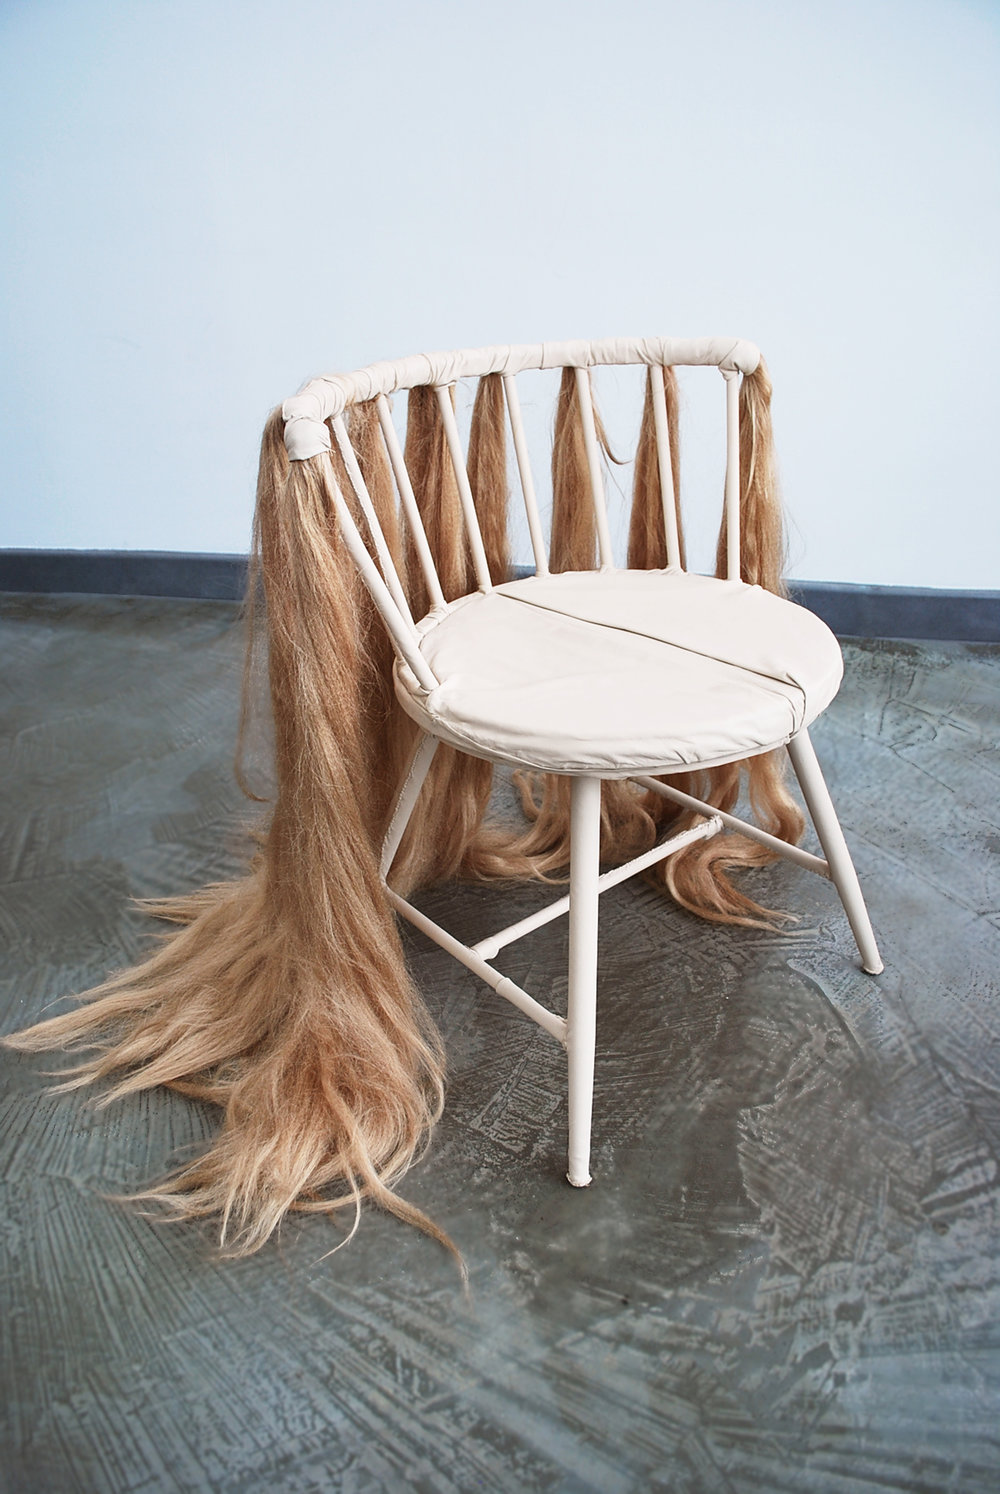 SFL_Despujols_Sad Chair.jpg